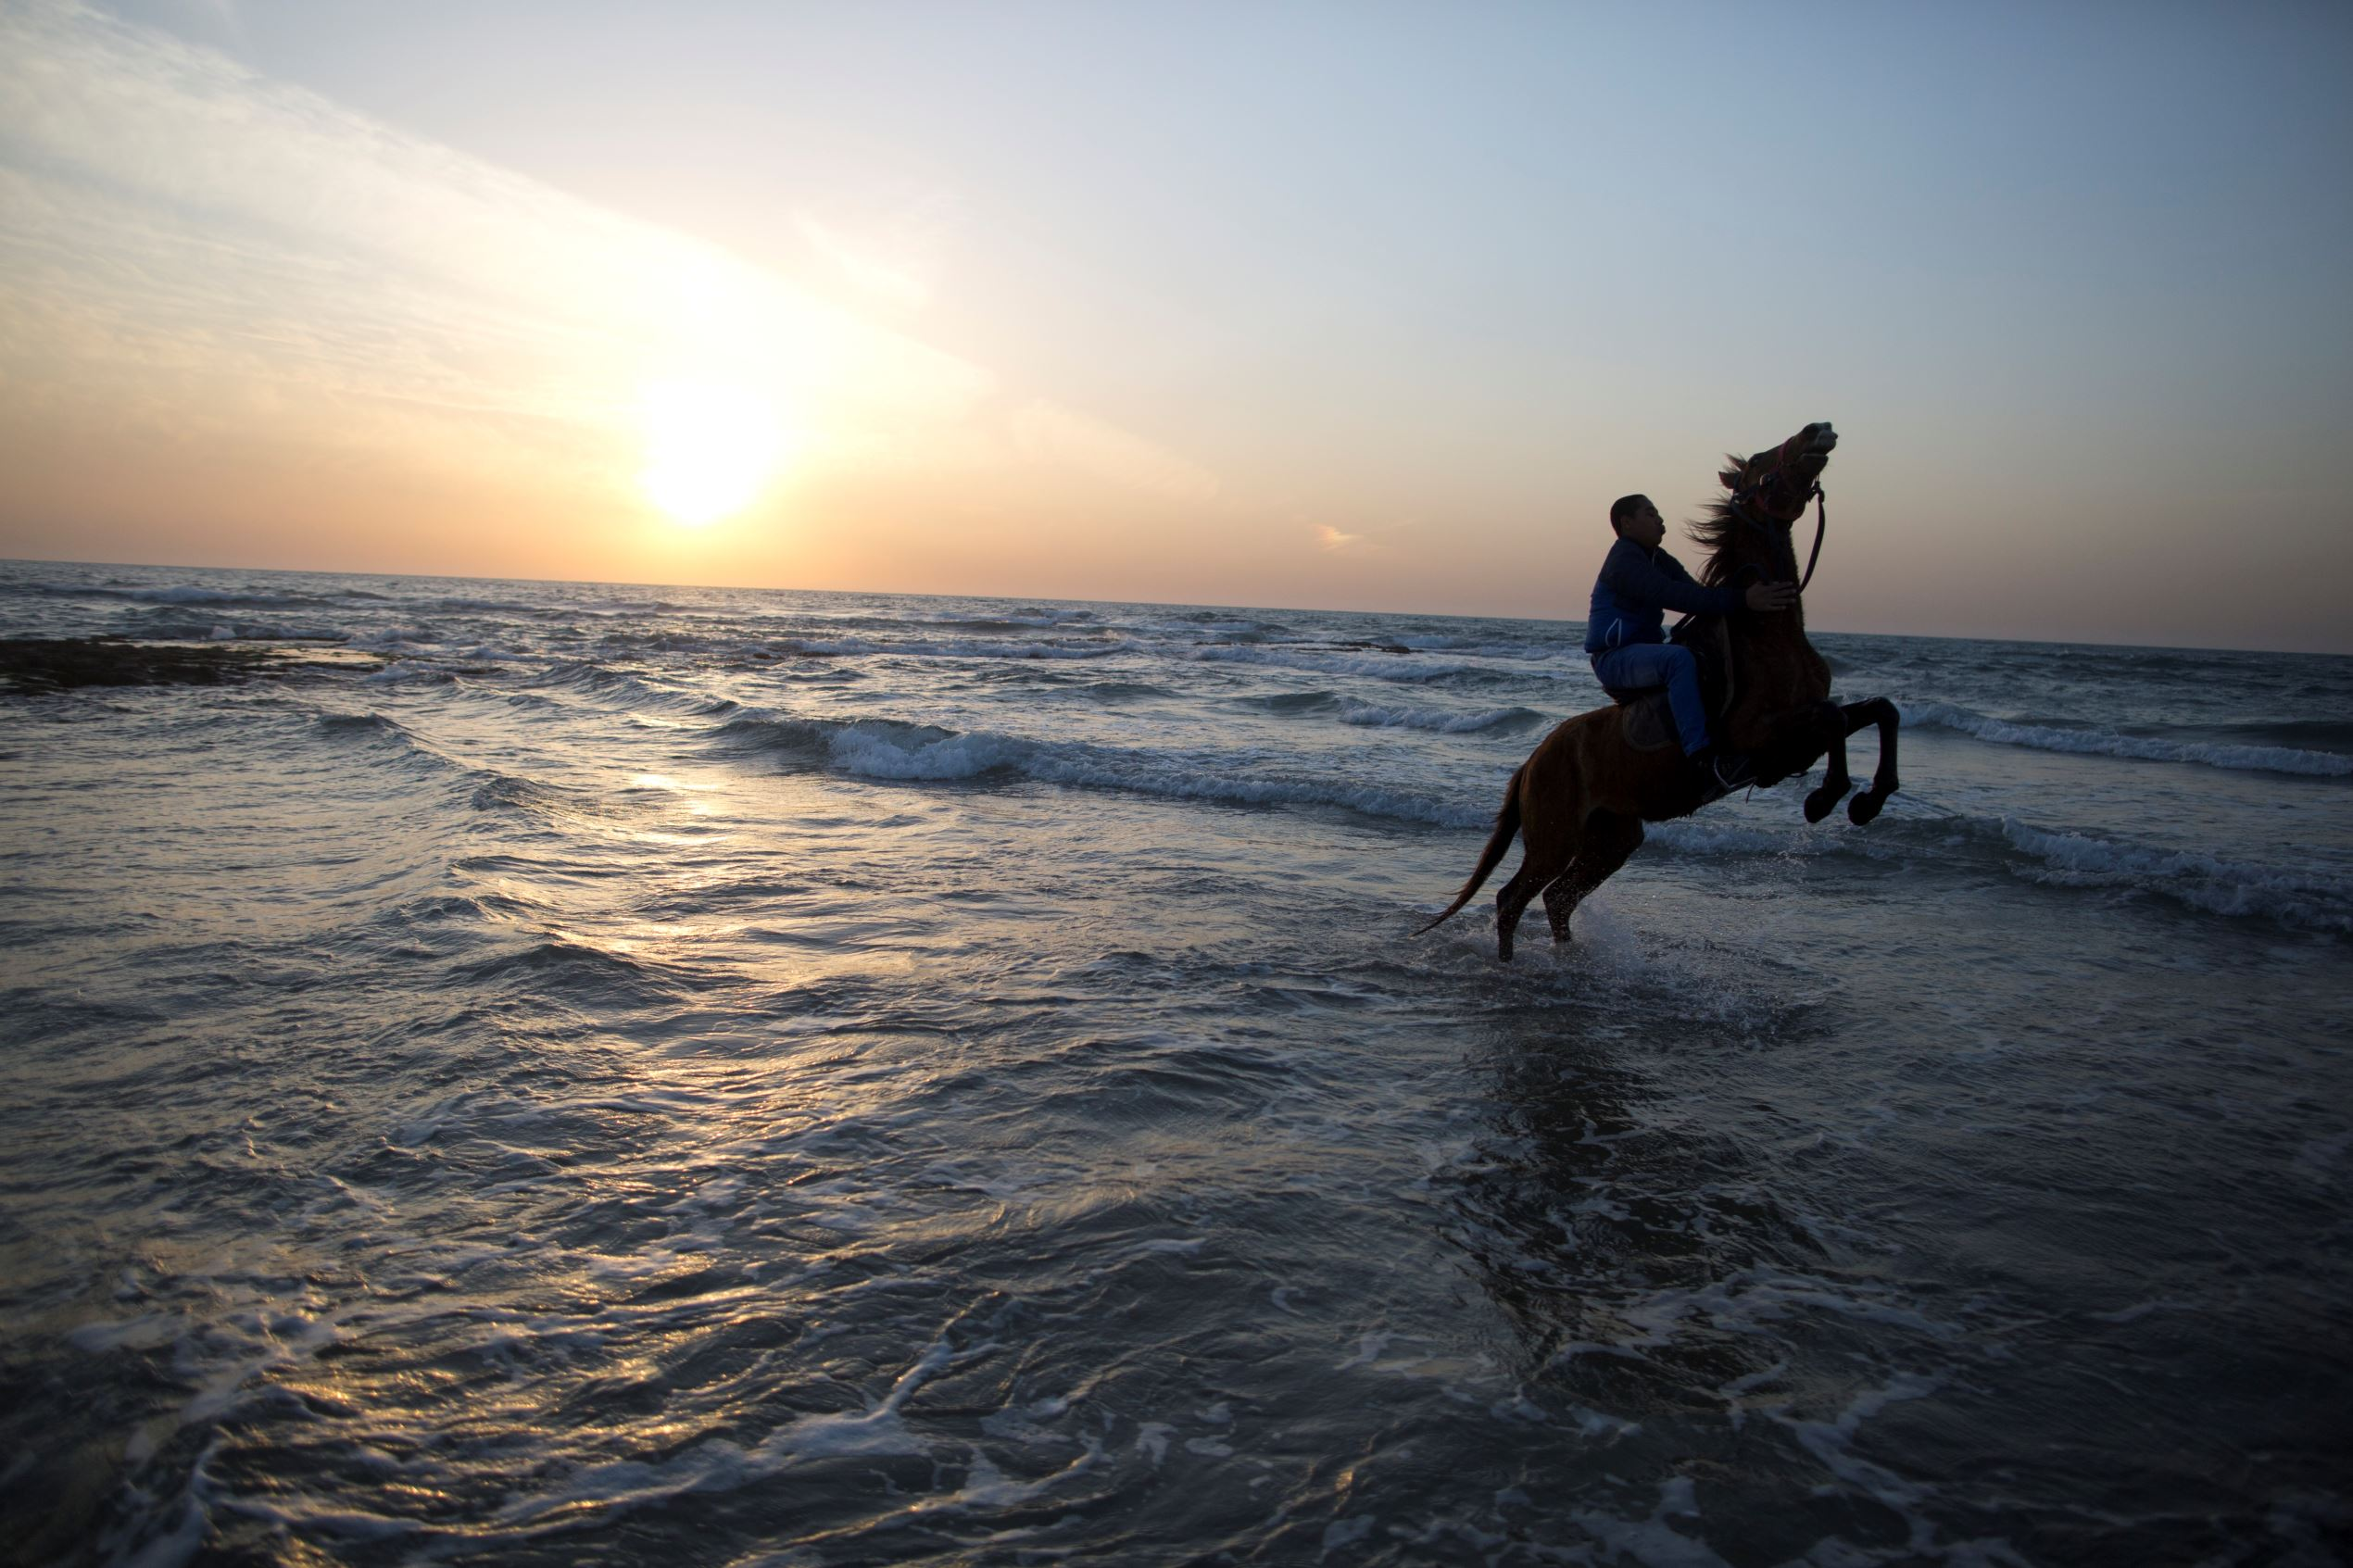 Слайд 39 из 67: JISR AZ ZARQA, ISRAEL - MARCH 07:  An Arab Israeli man rides a horse on the beach  on March 7, 2016 in the Arab Israeli Town of Jisr az Zarqa, Israel.  Jisr az-Zarqa is the only remaining Arab town in Israel located on the coast of the Mediterranean Sea,